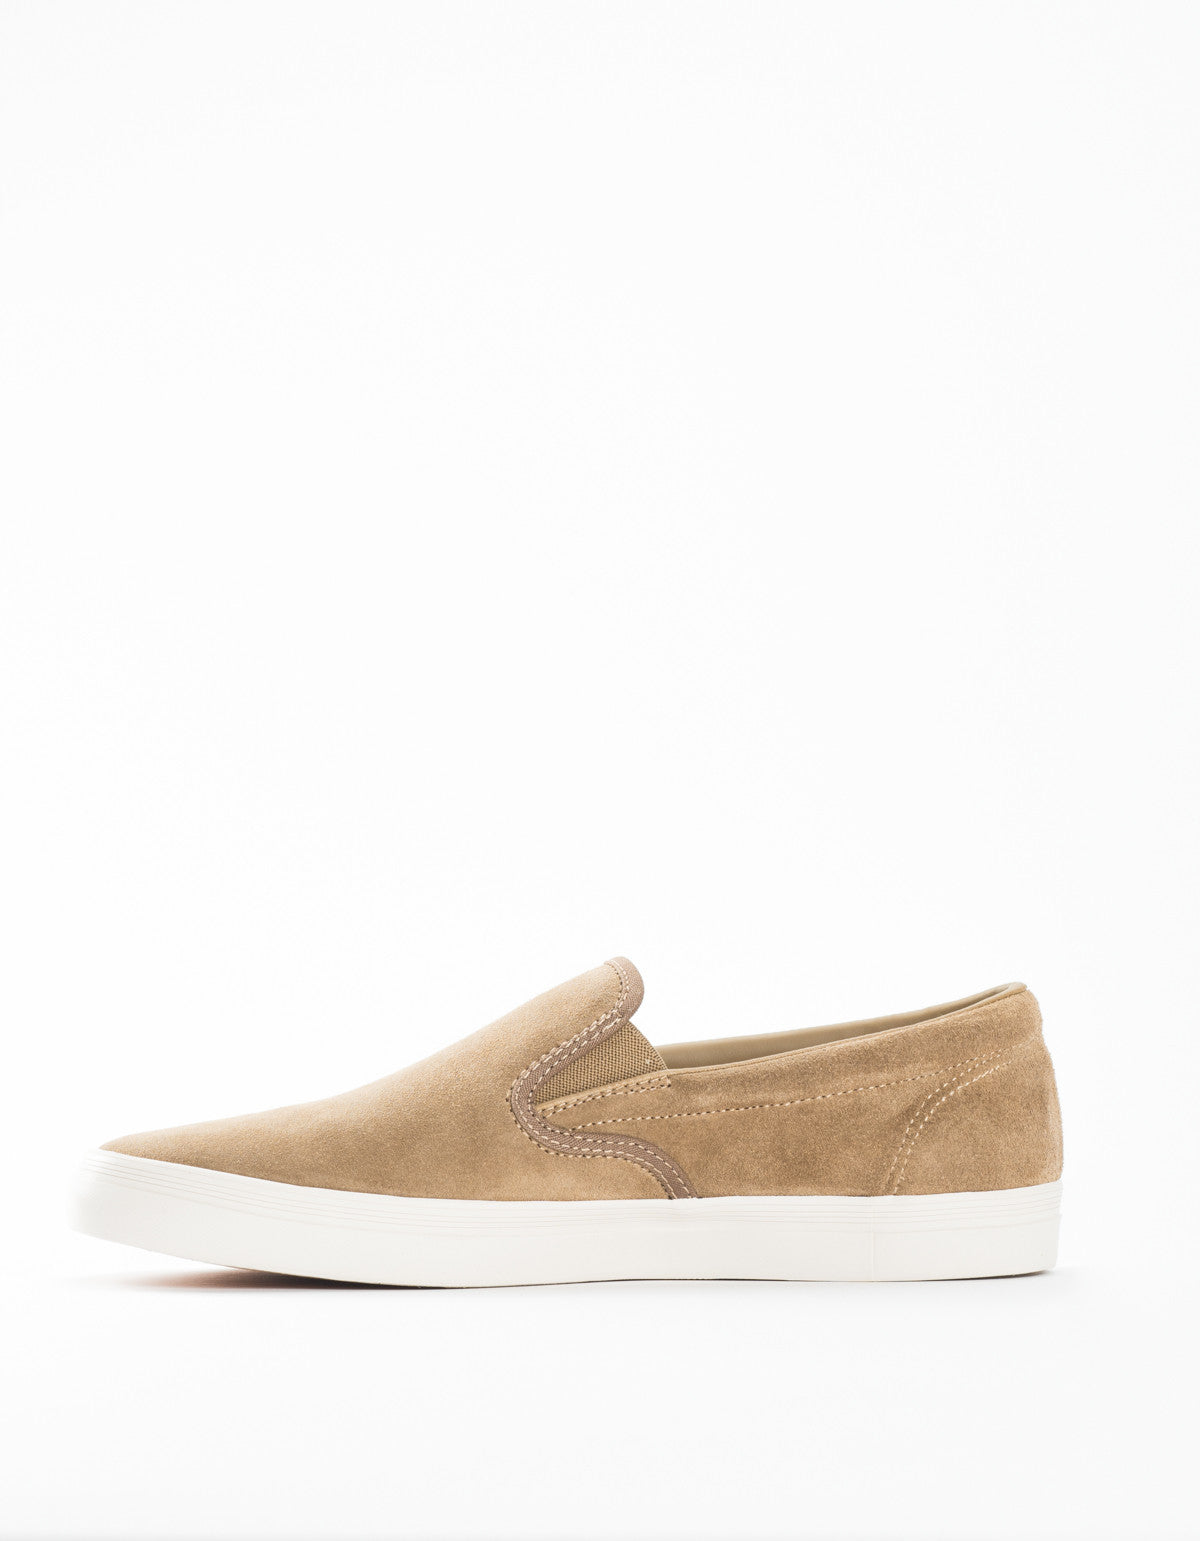 Fred Perry Underspin Slip On Suede Almond